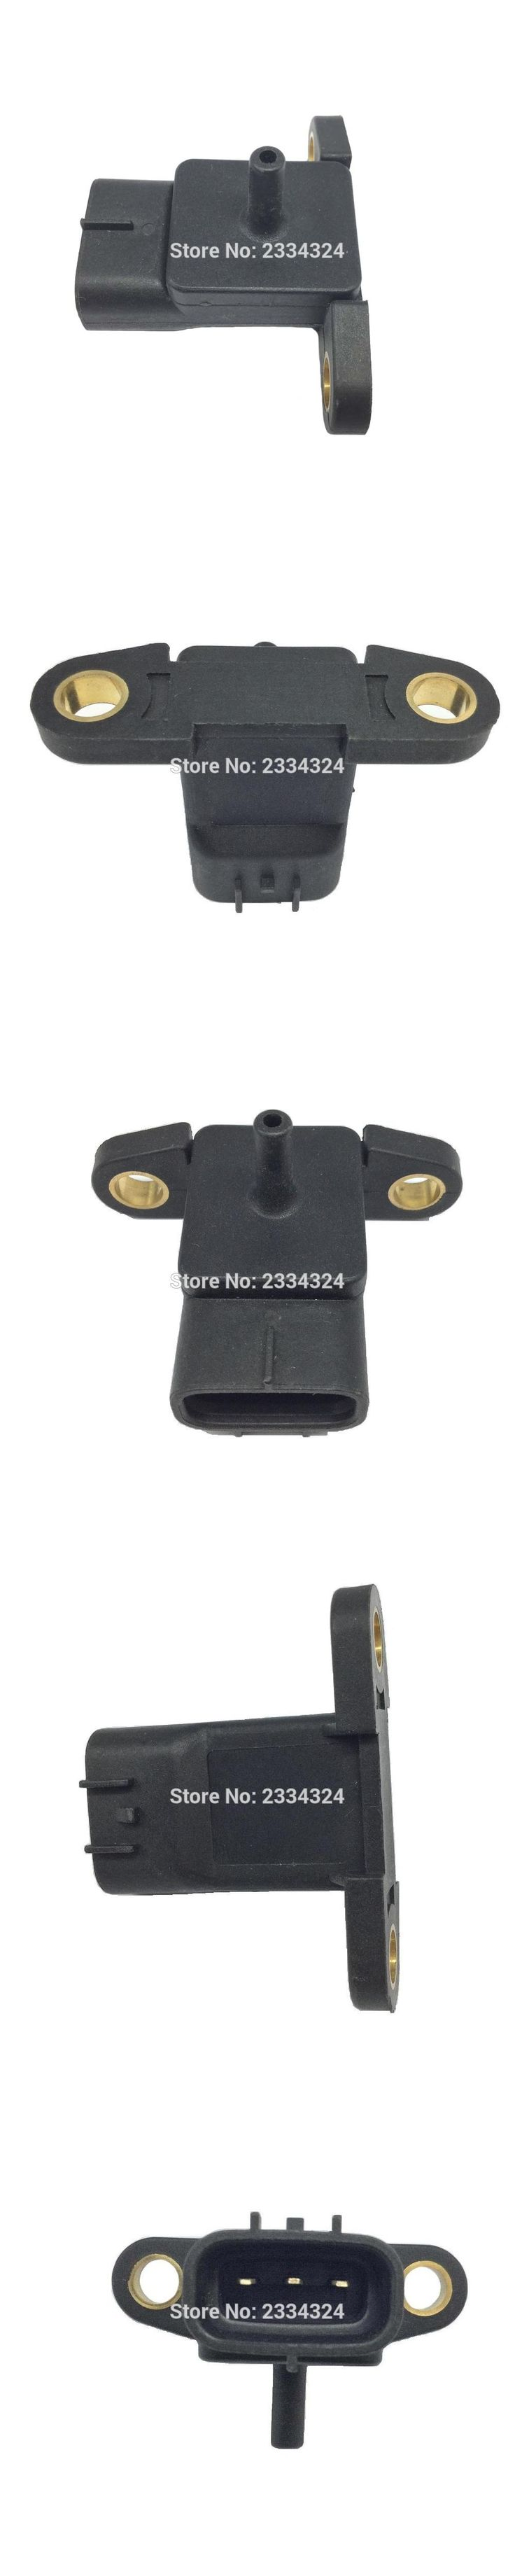 Pressure Sensor MAP For LEXUS IS200 TOYOTA AVENSIS 4RUNNER PRIUS RAV 4 079800-5770,709800-4790 ,894204-4030